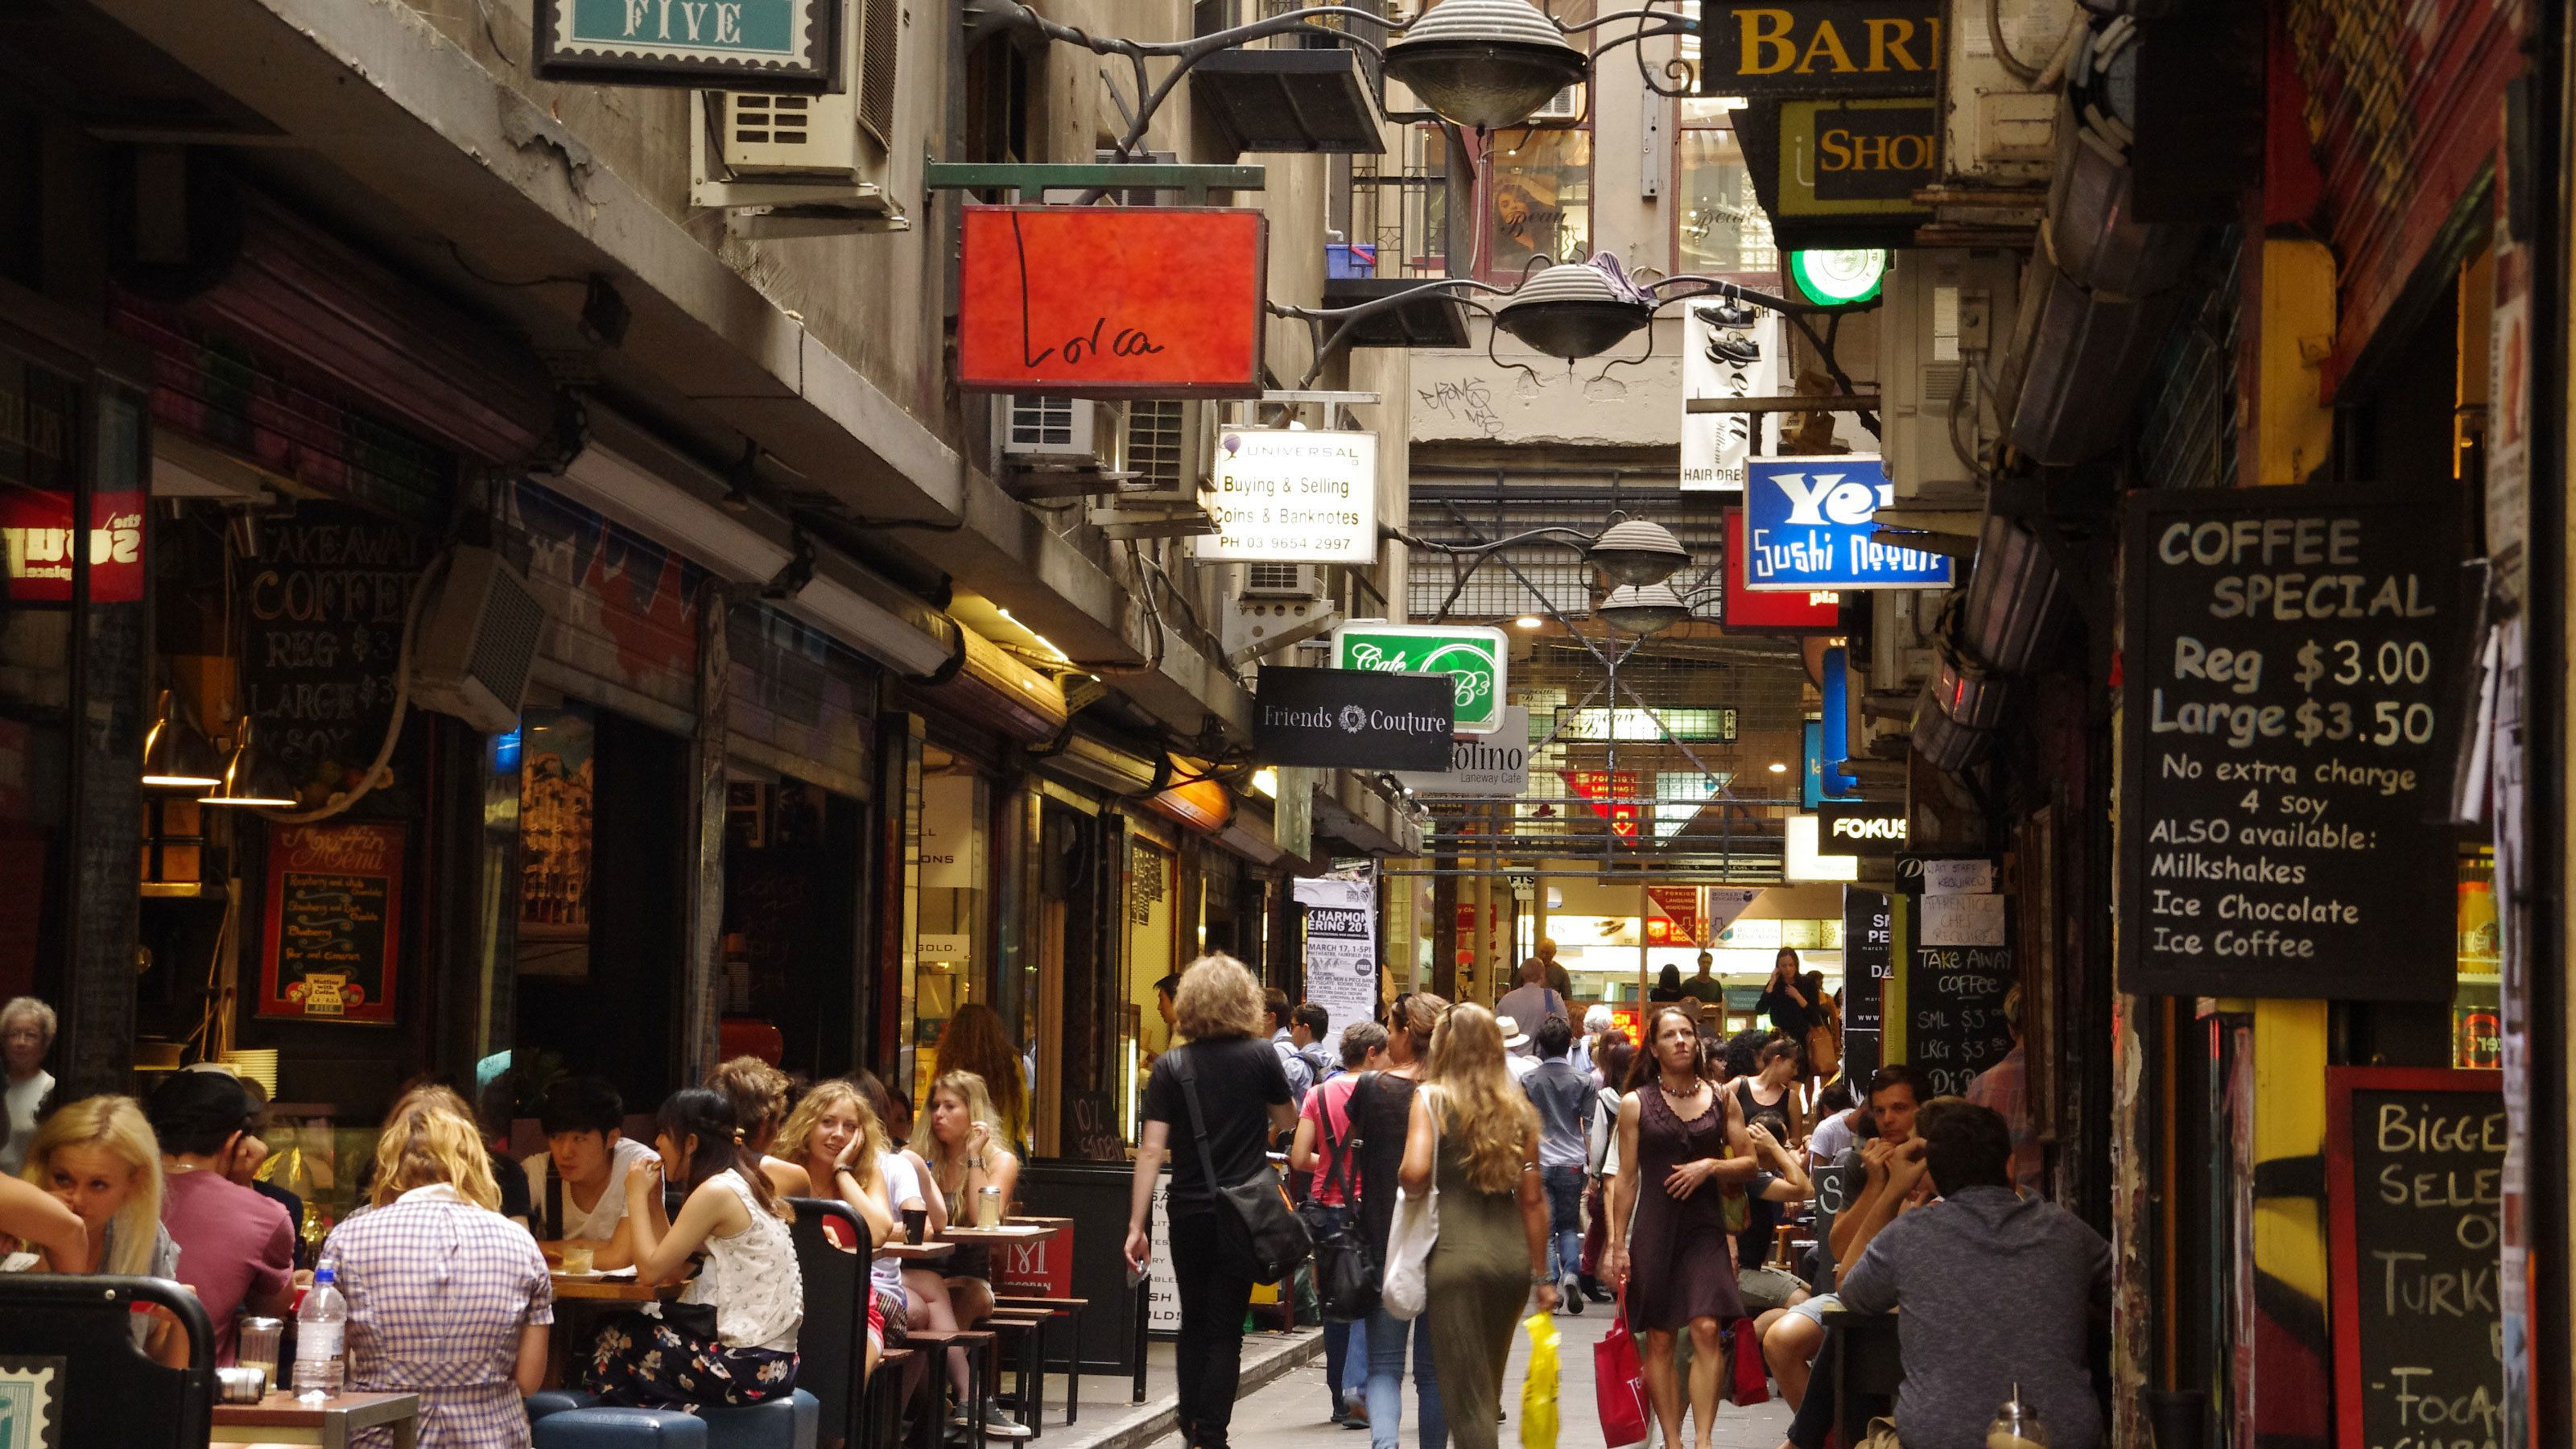 Narrow lane lined with shops and restaurants in the central business district of Melbourne